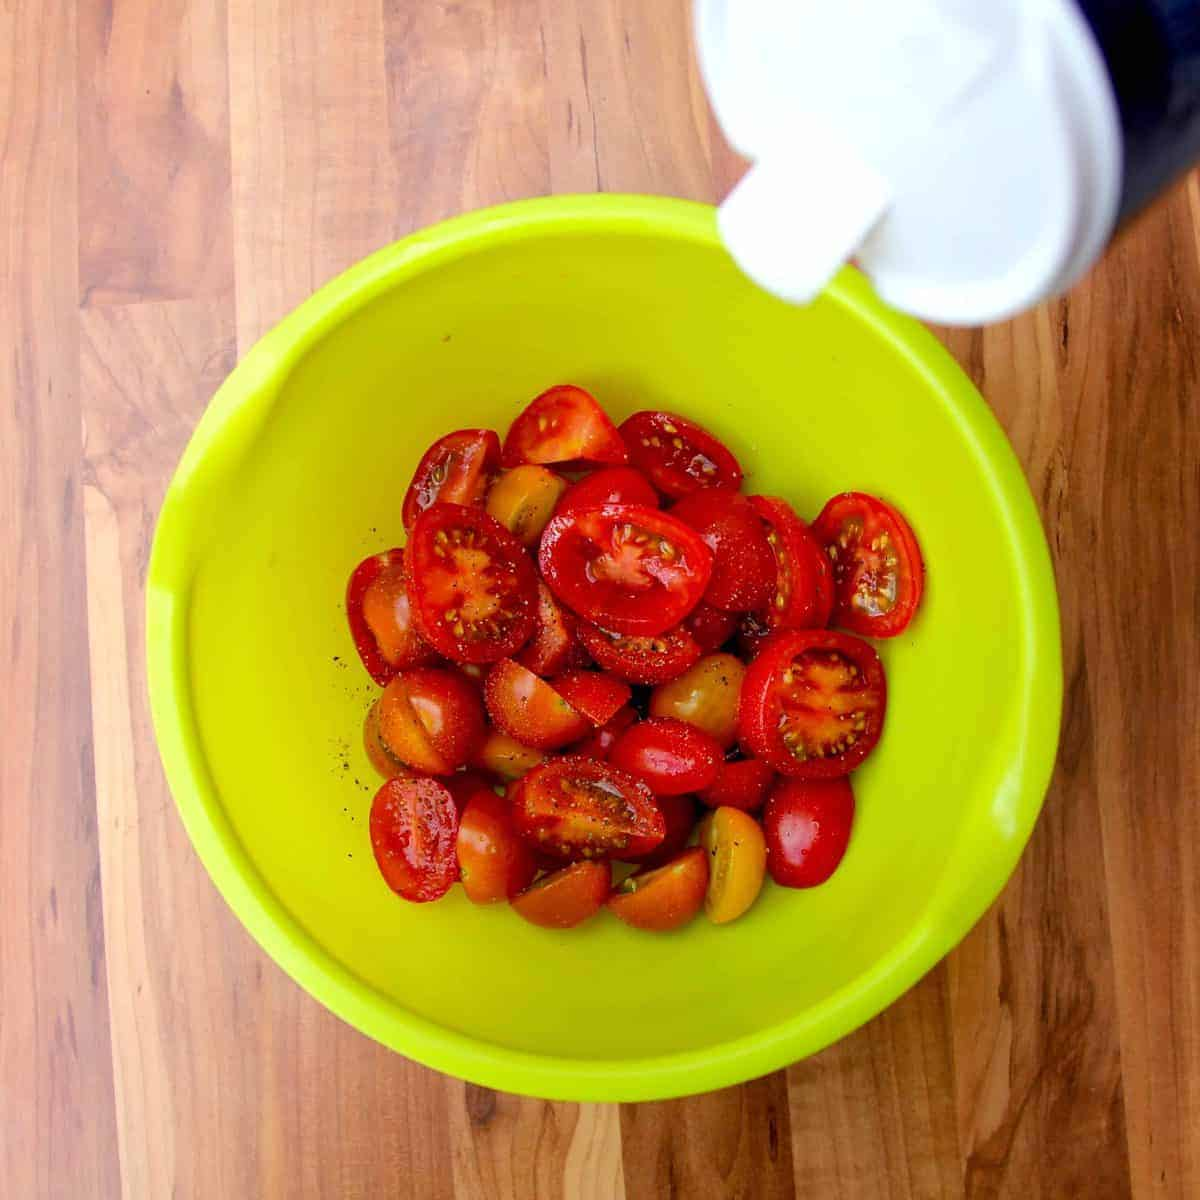 Seasoning the tomatoes in a bowl with sea salt.